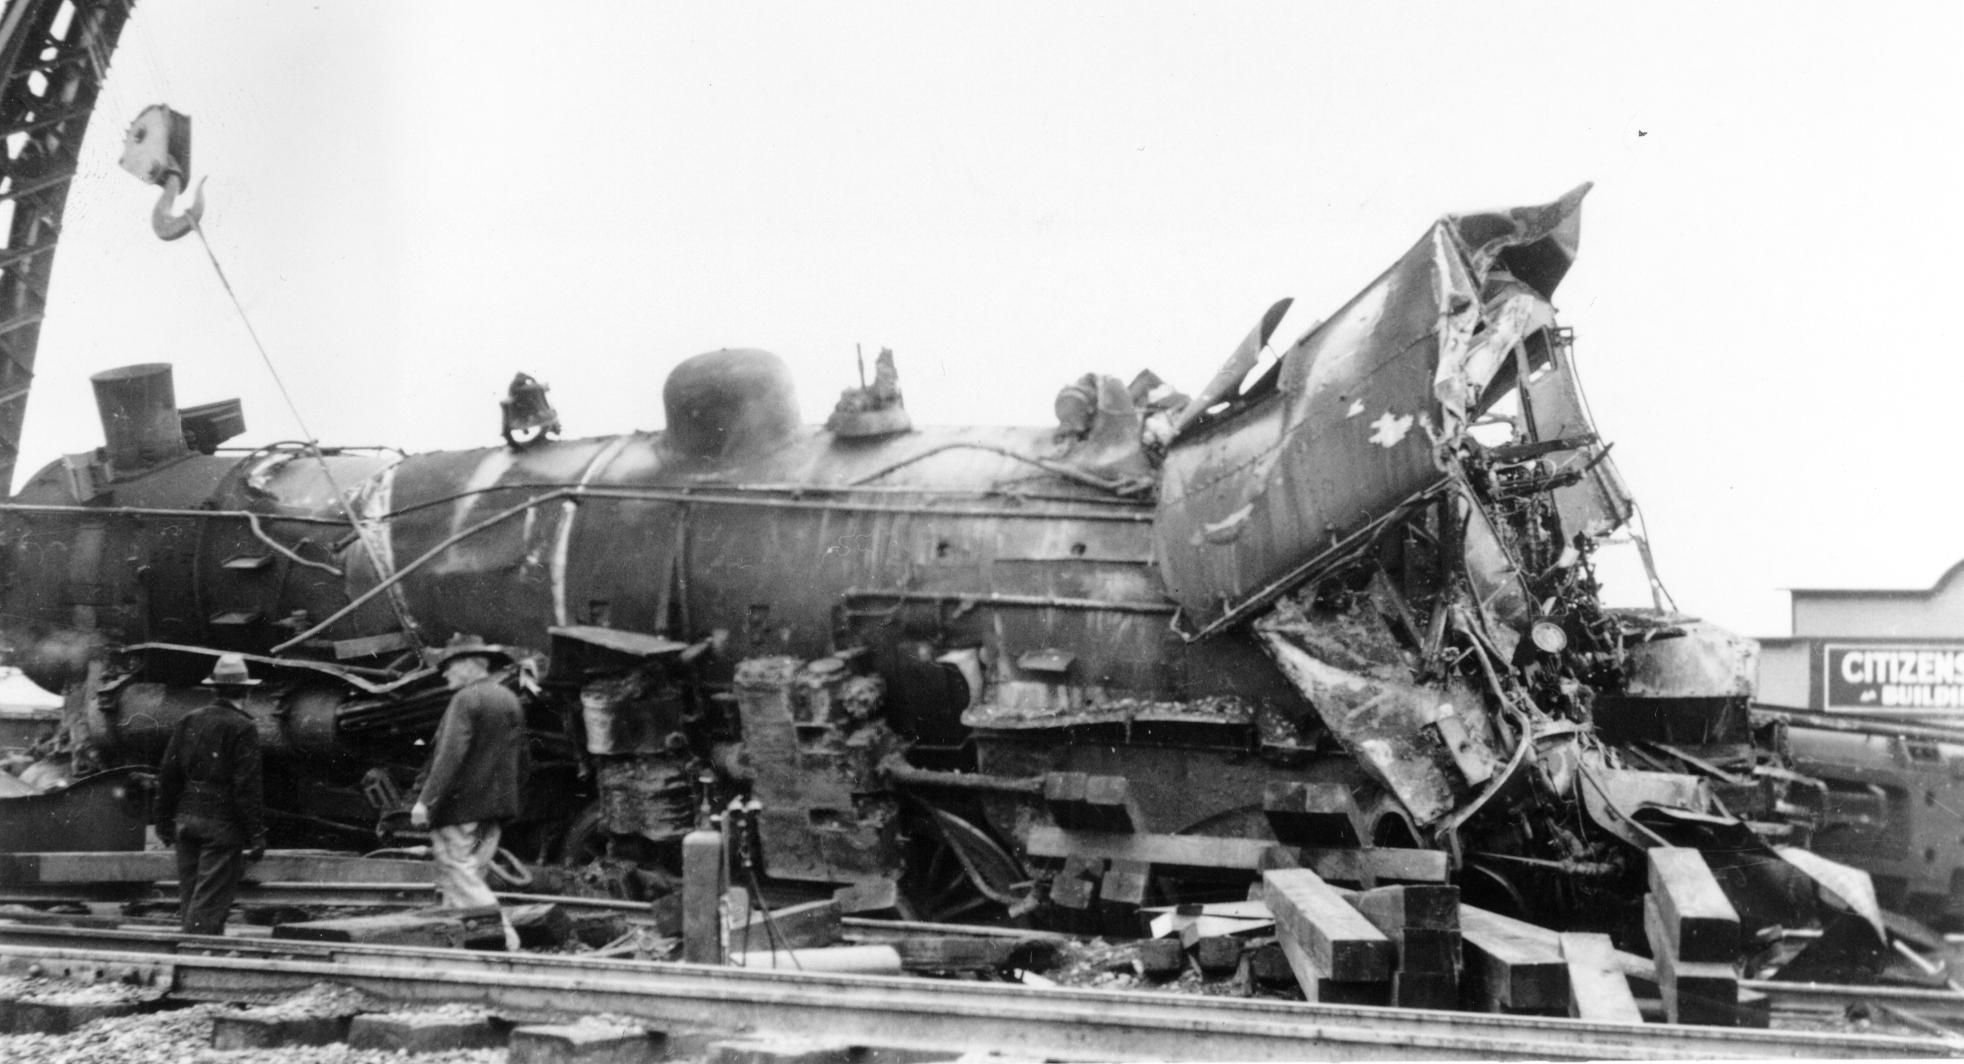 Wreck of SP steam locomotive 2479 at Selma, CA (south of